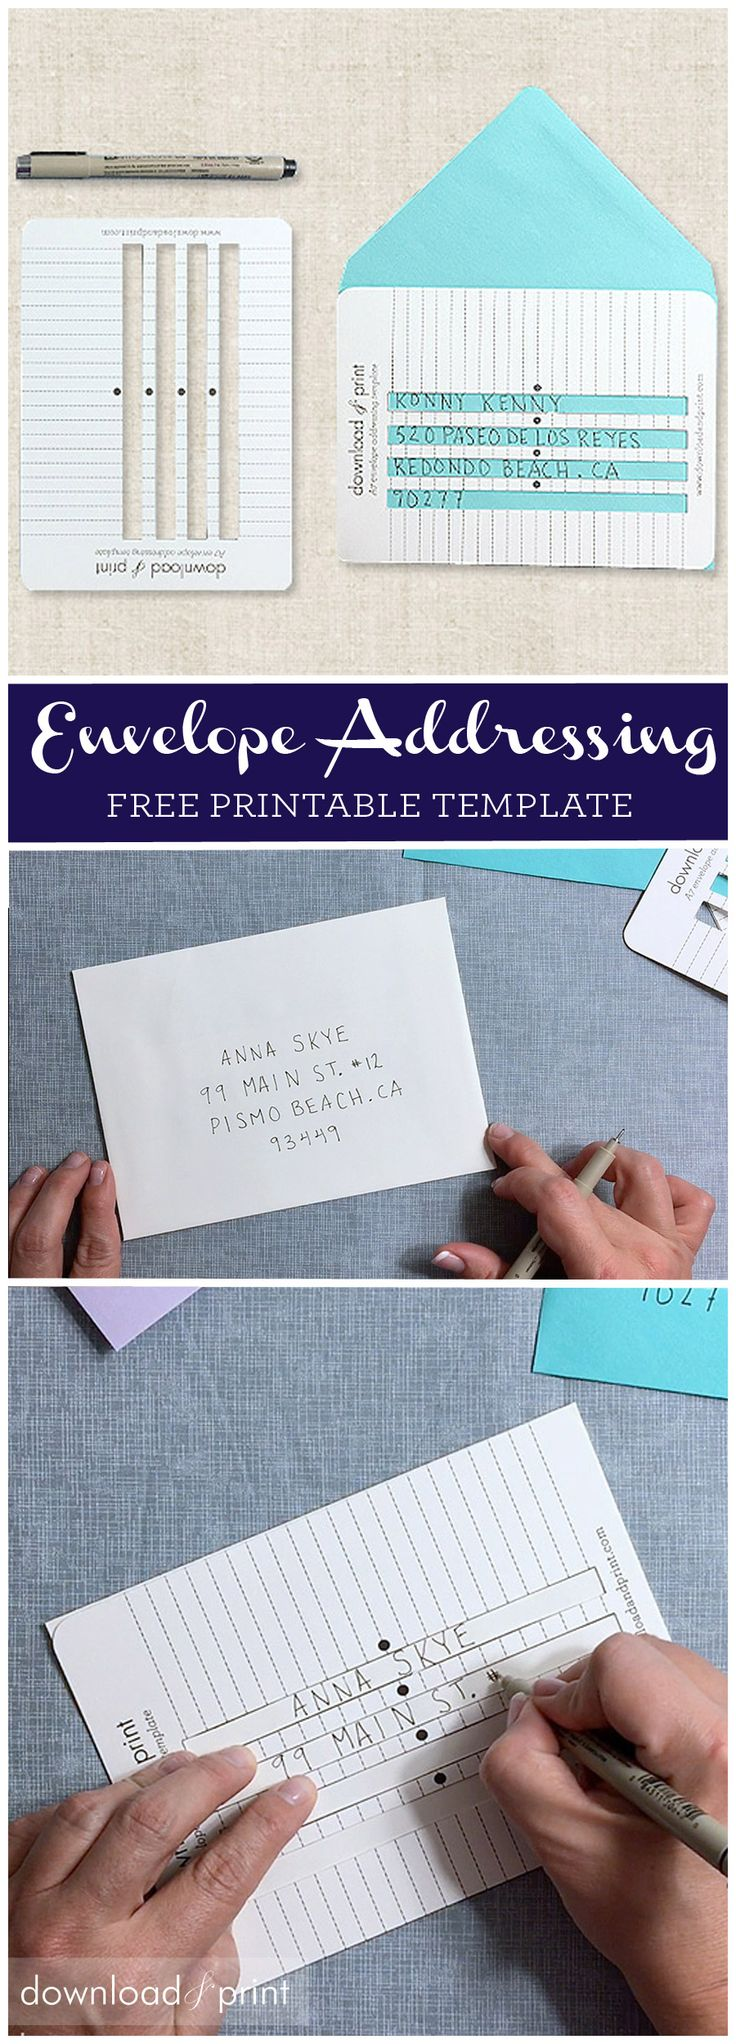 Here's the secret to perfectly aligned, perfectly spaced and perfectly straight hand-written envelopes! Download the free template and click through for hints on how to use it. From Download & Print.